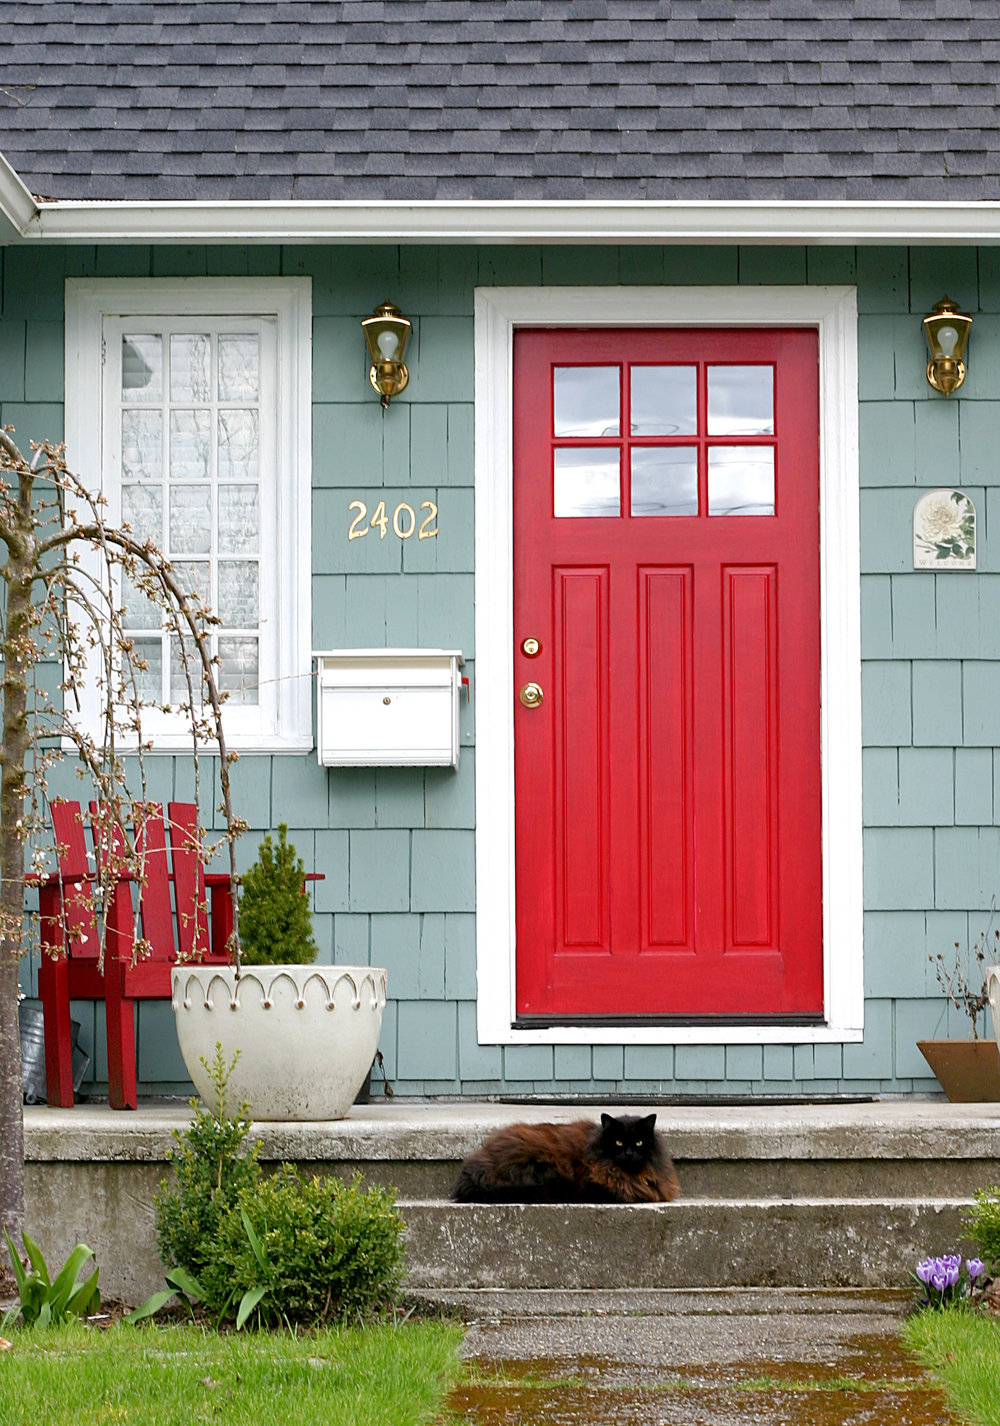 red door and cat